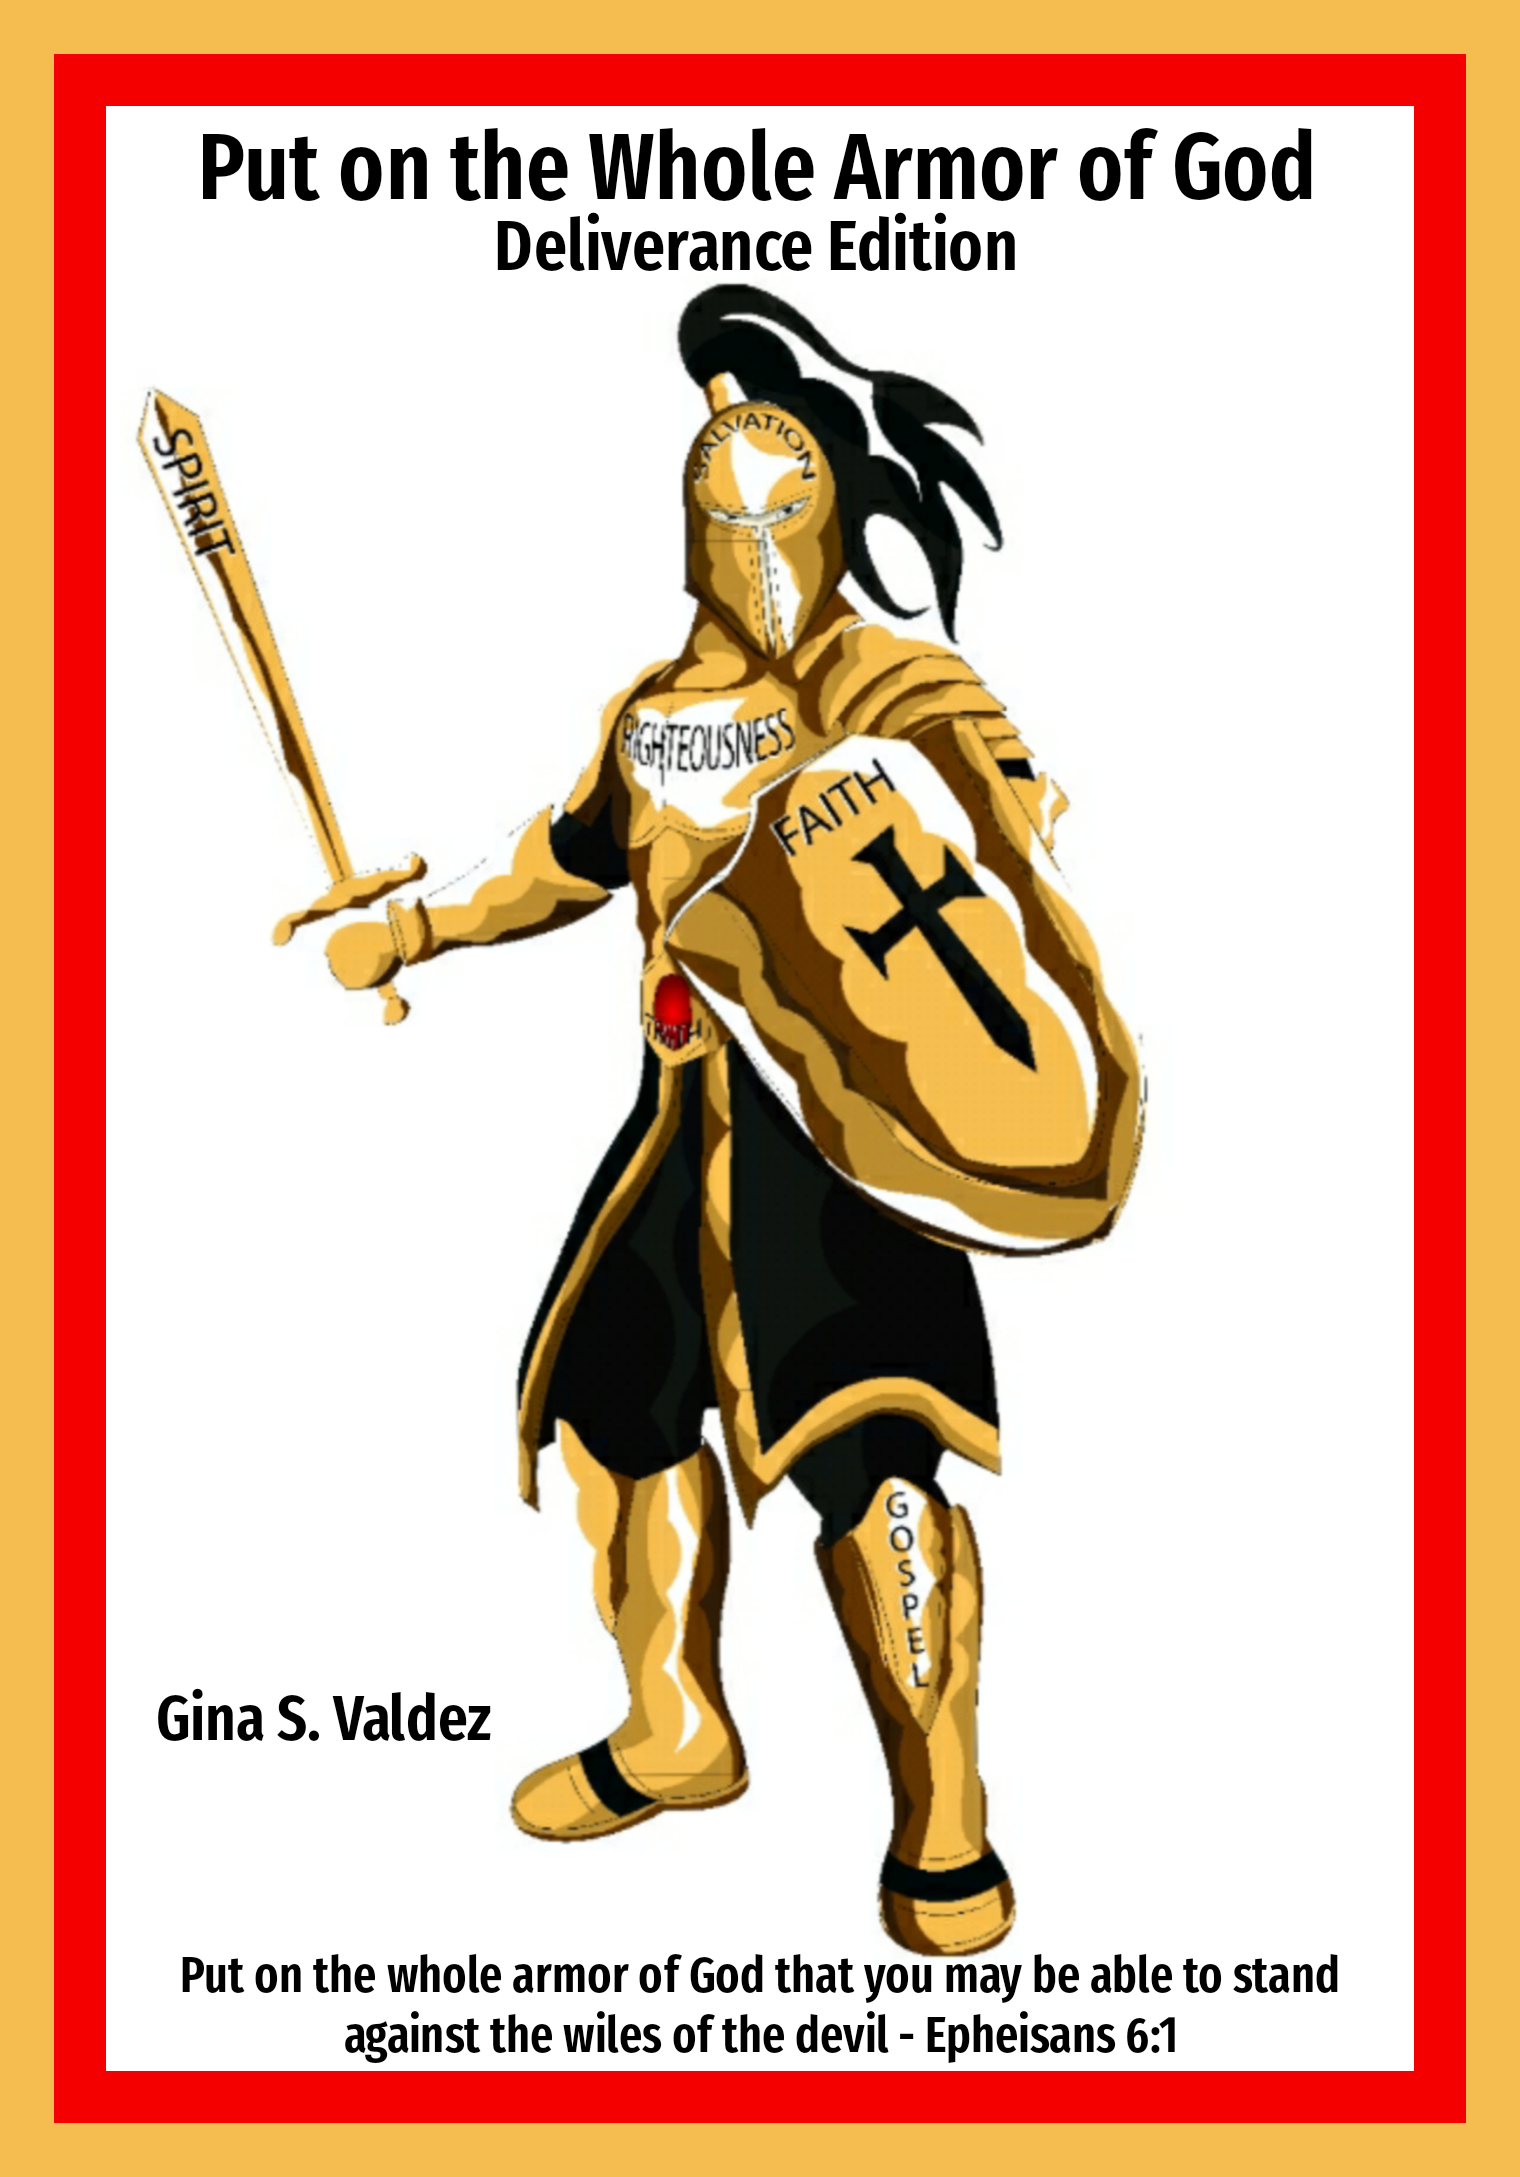 Put on the whole Armor of God (Deliverance edition)